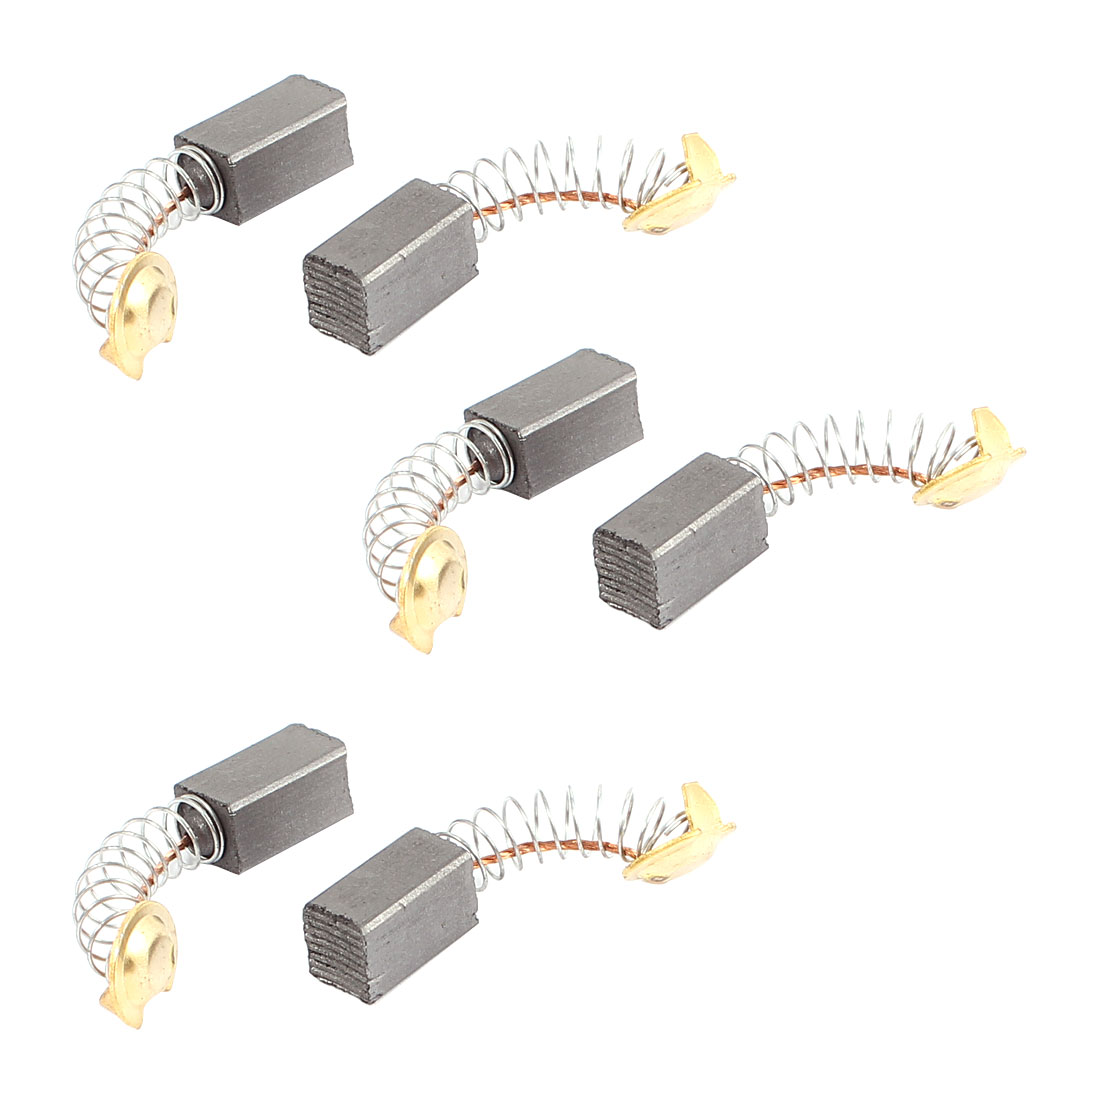 6 Pcs Replacement Electric Motor Carbon Brushes 12mm x 7mm x 6mm for Motors